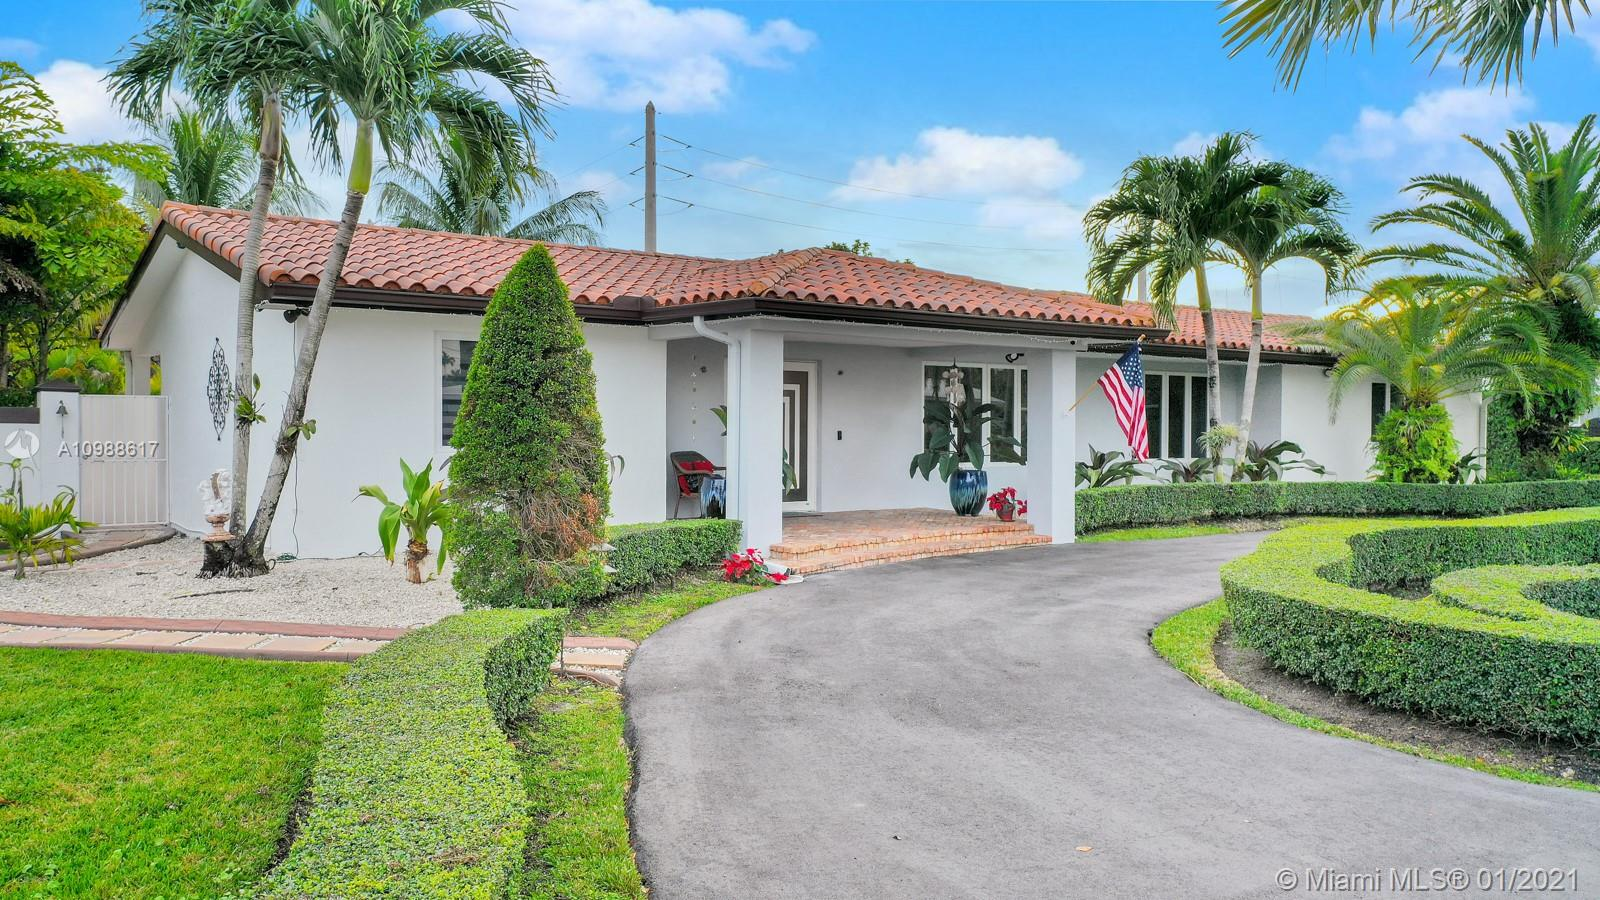 STUNNING AND IMPRESSIVE ONE OF A KIND PROPERTY IN THE HEART OF MIAMI BAPTIST HOSPITAL AREA, CLOSE TO DADELAND MALL, EXPRESSWAY AND US1. COME SEE THIS MARVELOUS HOME WITH NO ASSOCIATION SITTING ON AN ALMOST 17,000 S/F LOT WITH 2,779 S/F OF LIVING METICULOUSLY MAINTAINED AREA AND 706 S/F OF NON-LIVING AREA (2 TERRACES, 1 PORCH AND A GAZZEBO LOADED WITH BAR/COOKING AREA & FULL FRENCH REFRIGERATOR. THIS INVITING HOME IS PERFECT FOR FAMILY ENTERTAINMENT. IT BOASTS 4 BEDROOMS 2 BATHS AND A 2 CAR GARAGE CONVERTED INTO LIVING QUATERS OR COULD BE A GREAT SOURCE OF INCOME. HOME HAS BEEN TASTEFULLY UPGRADED W IMPACT DOORS/WINDOWS, GRANITE COUNTER, SS APPLIANCES, WOODEN CABINETRY, BAR AREA, LAUNDRY ROOM, DESIGNERS WINDOW TREATMENTS, FRESHLY PAINT IN & OUT, POOL/JACUZZI, CIRCULAR DRIVEWAY & NEW GATES.